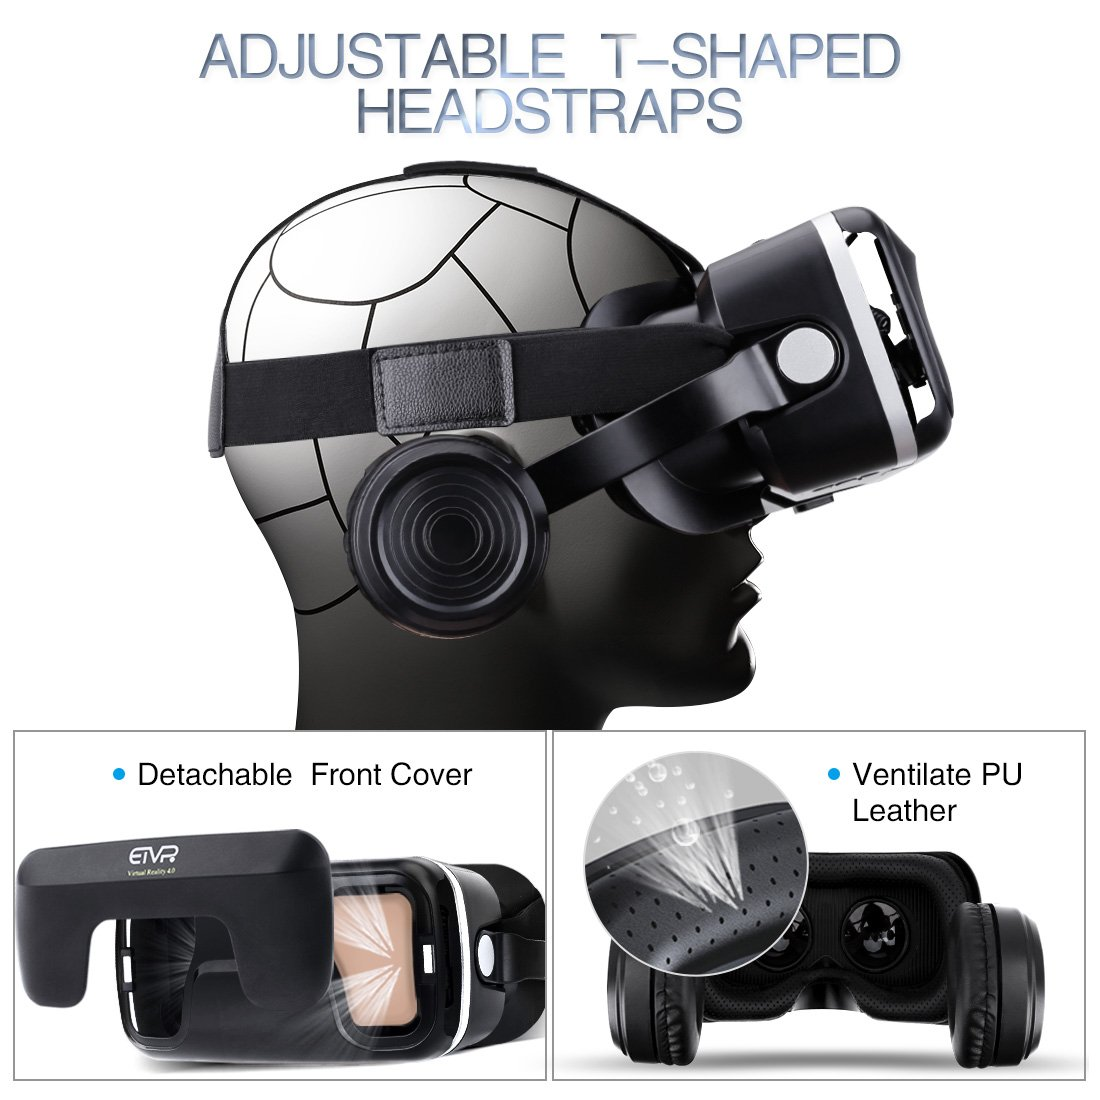 VR Headset with Remote Controller Immersive 3D VR Glasses Virtual Reality Headsetwith Stereo Headphone and Adjustable Headstrap for 3D Movies & VR Games, Fit for 4.7-6.0 inch IOS/Android Smartphone by EXCLEAD (Image #4)